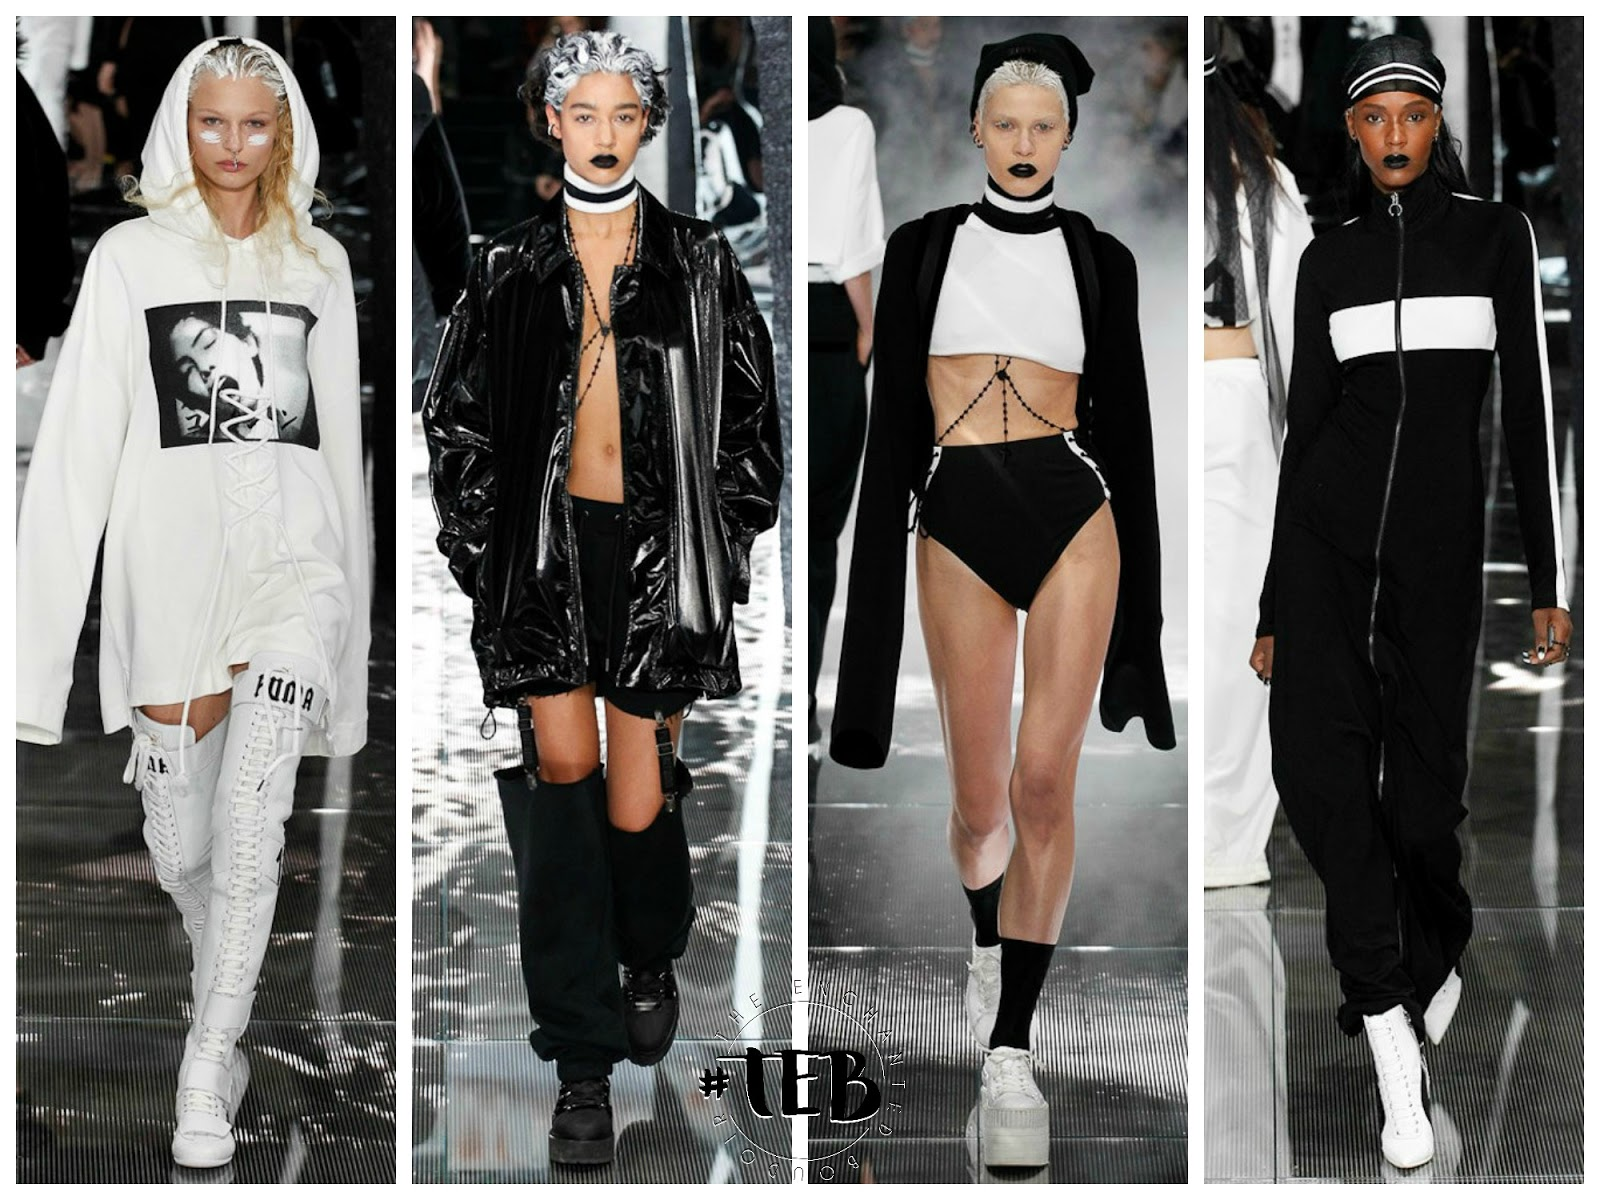 rihanna runway show for Puma at new york fashion week